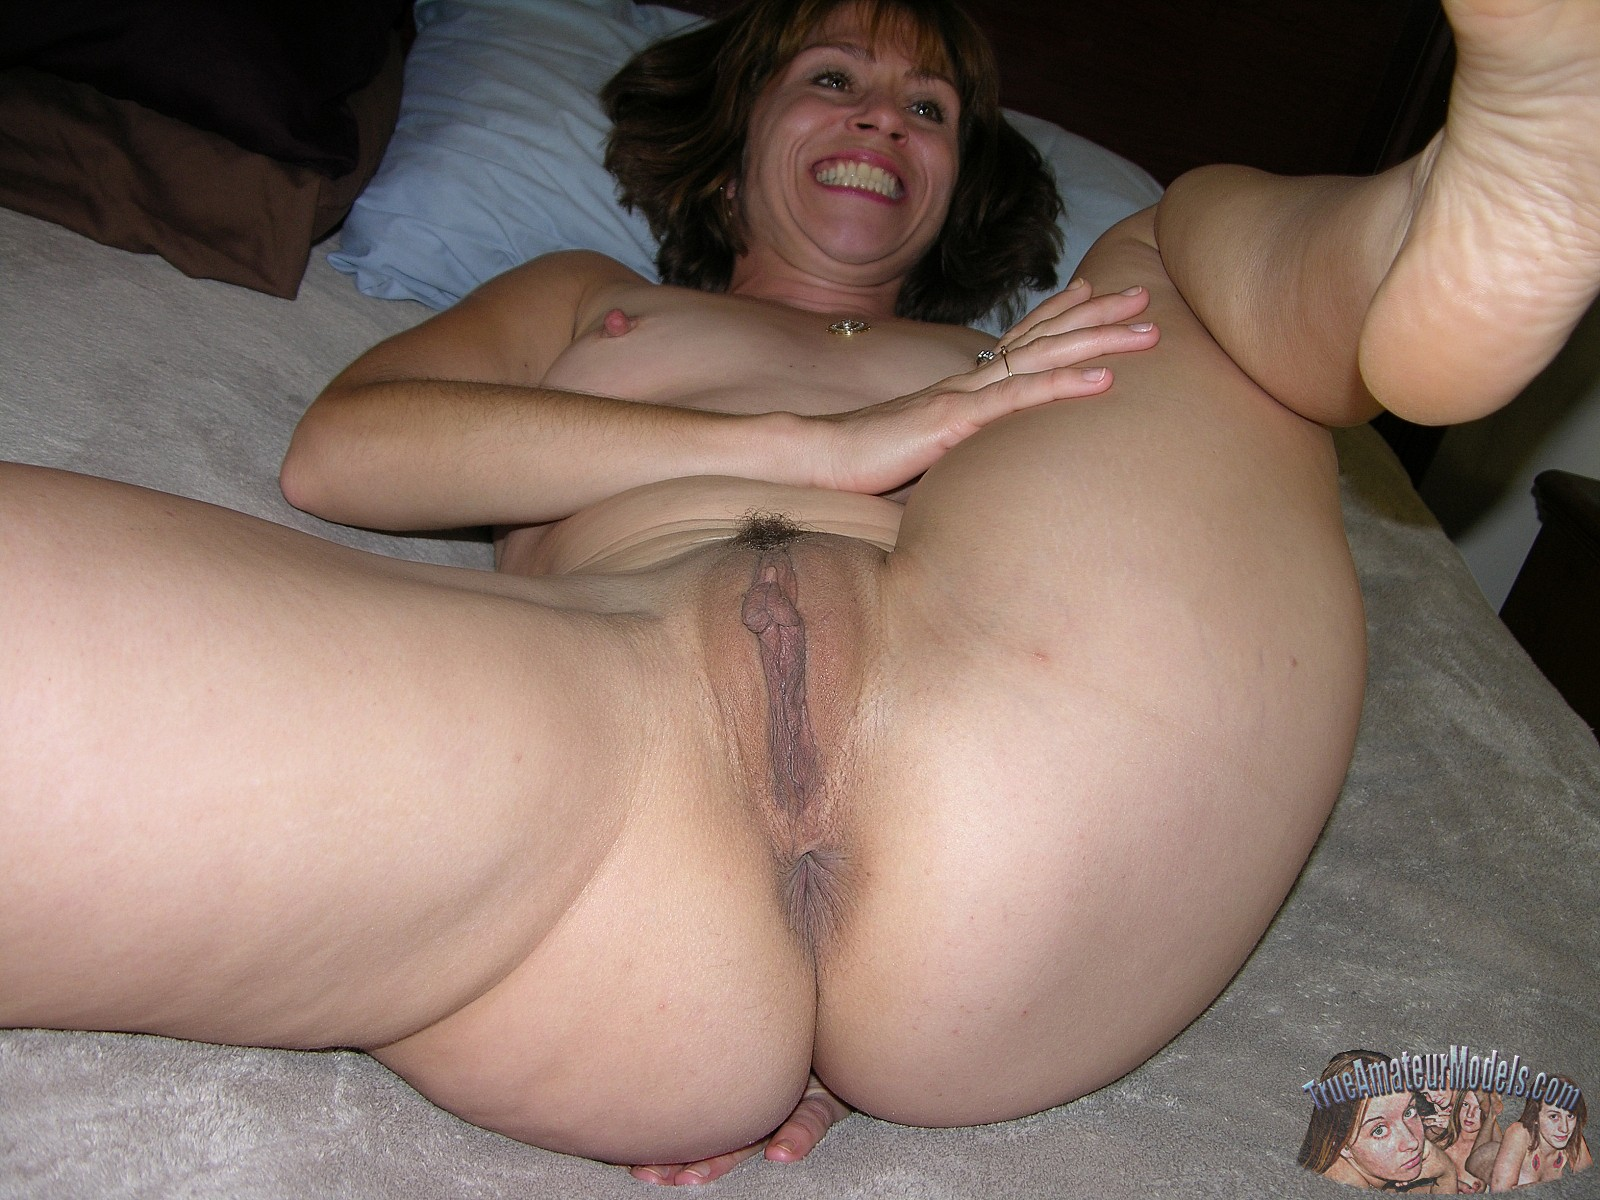 Vids milf amature gratis